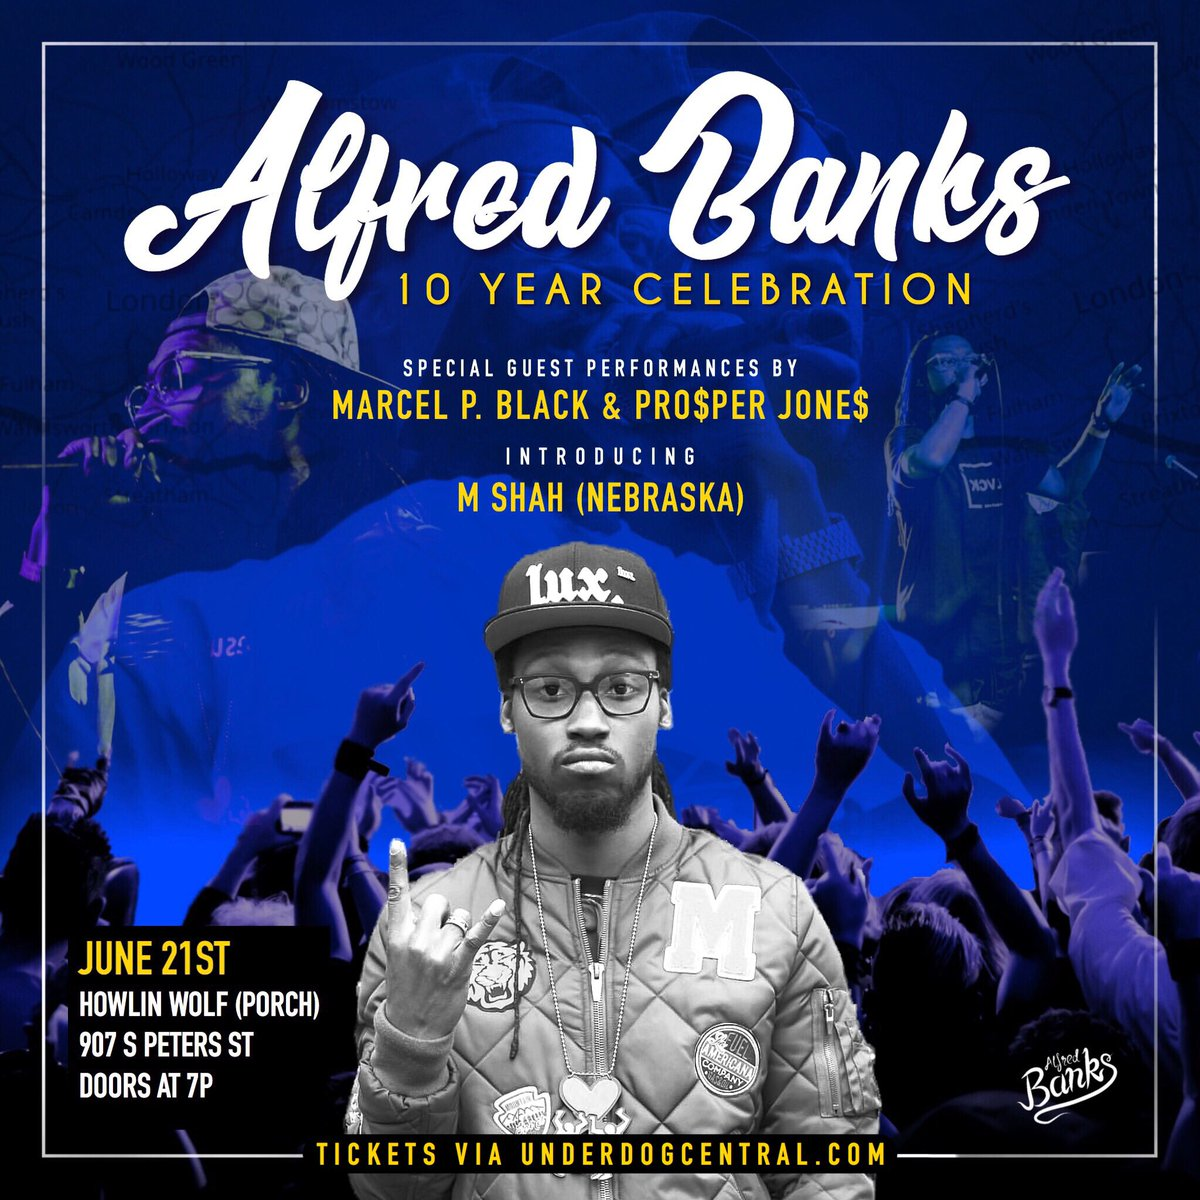 2-0-1-9...NEW ORLEANS: June 21st, I need your help Celebrating my 10 years in the game! Special guests: @MarcelPBlack @Prosper__Jones & @MShahRaps !!!!  Cop your tickets now: https://www.ticketweb.com/event/on-the-porch-alfred-banks-howlin-wolf-tickets/9372695…